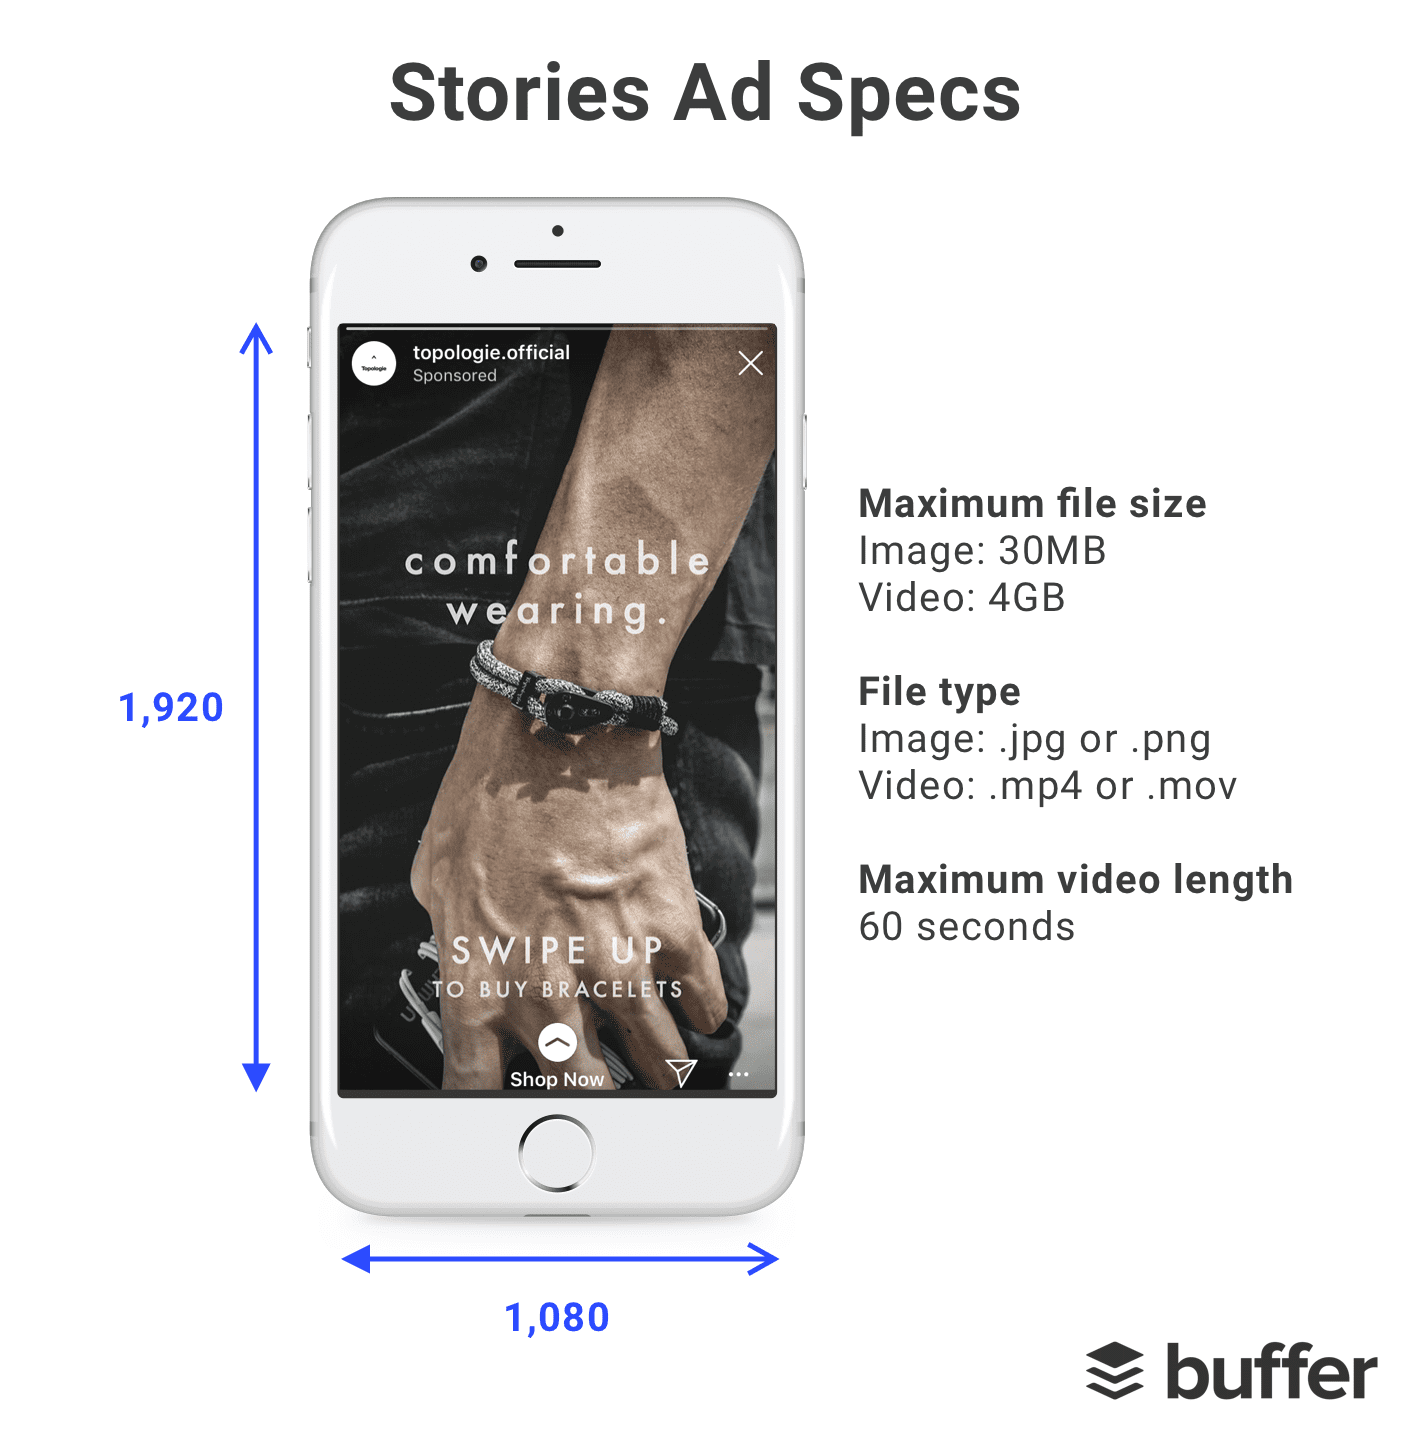 Facebook and Instagram Stories ad specs